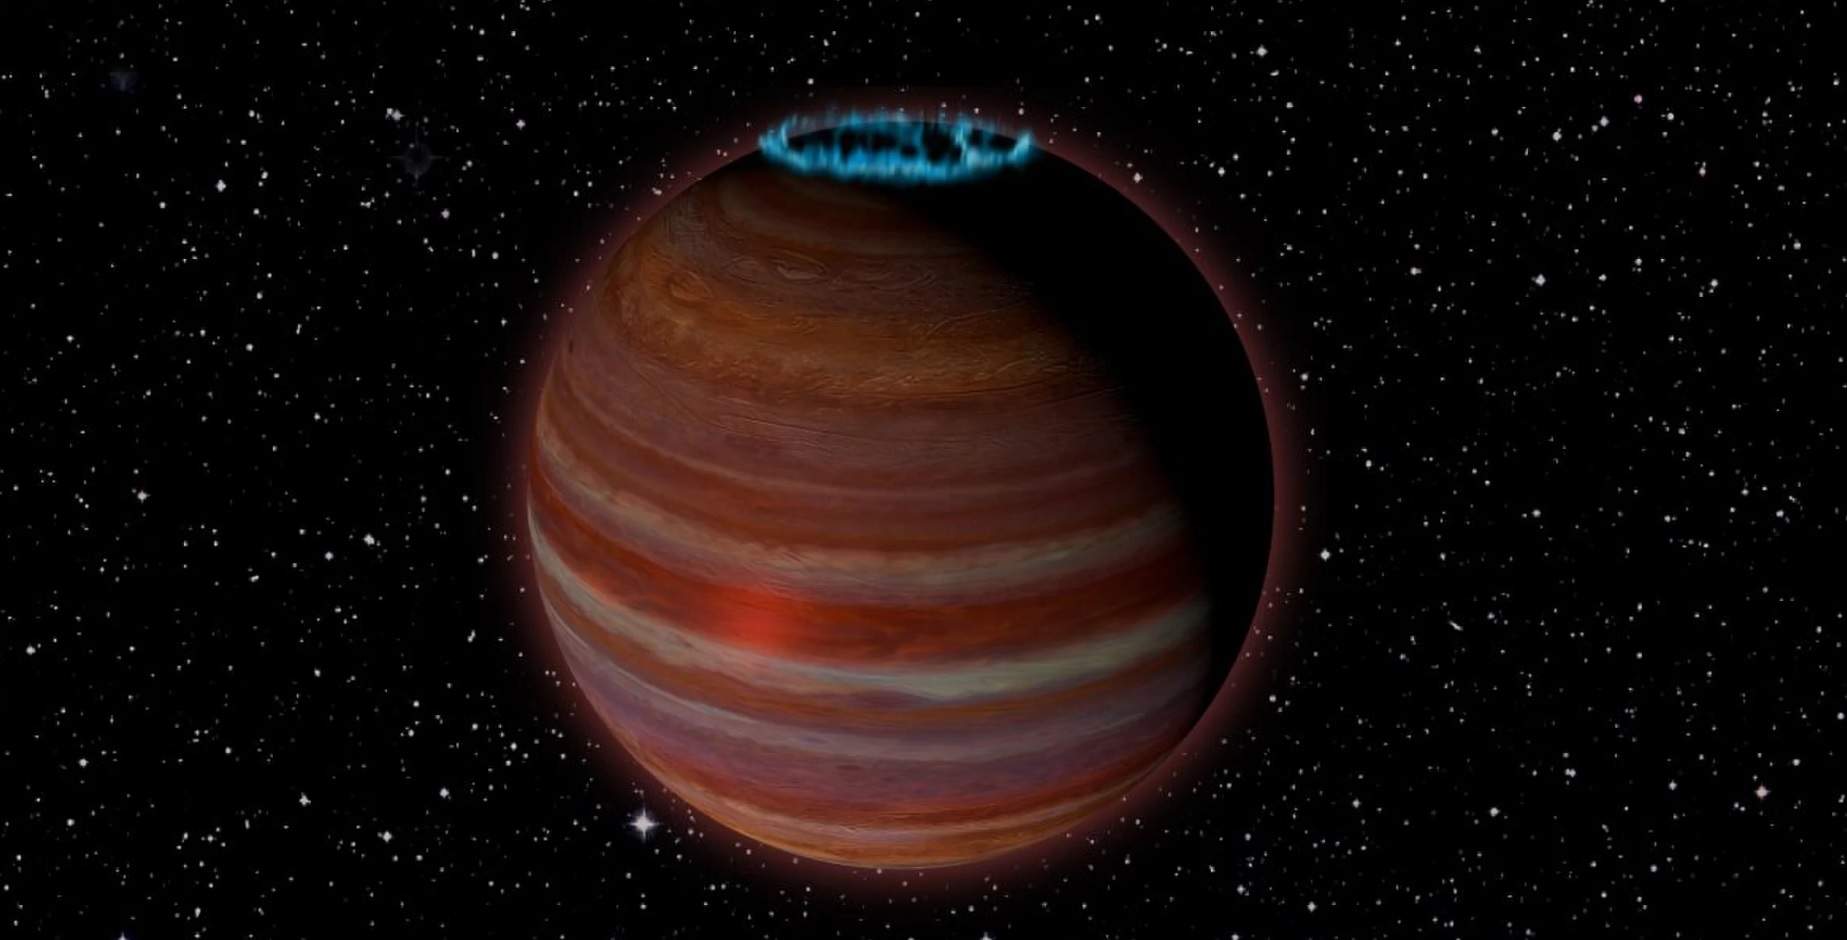 Scientists have discovered a giant wandering planet with a powerful magnetic field